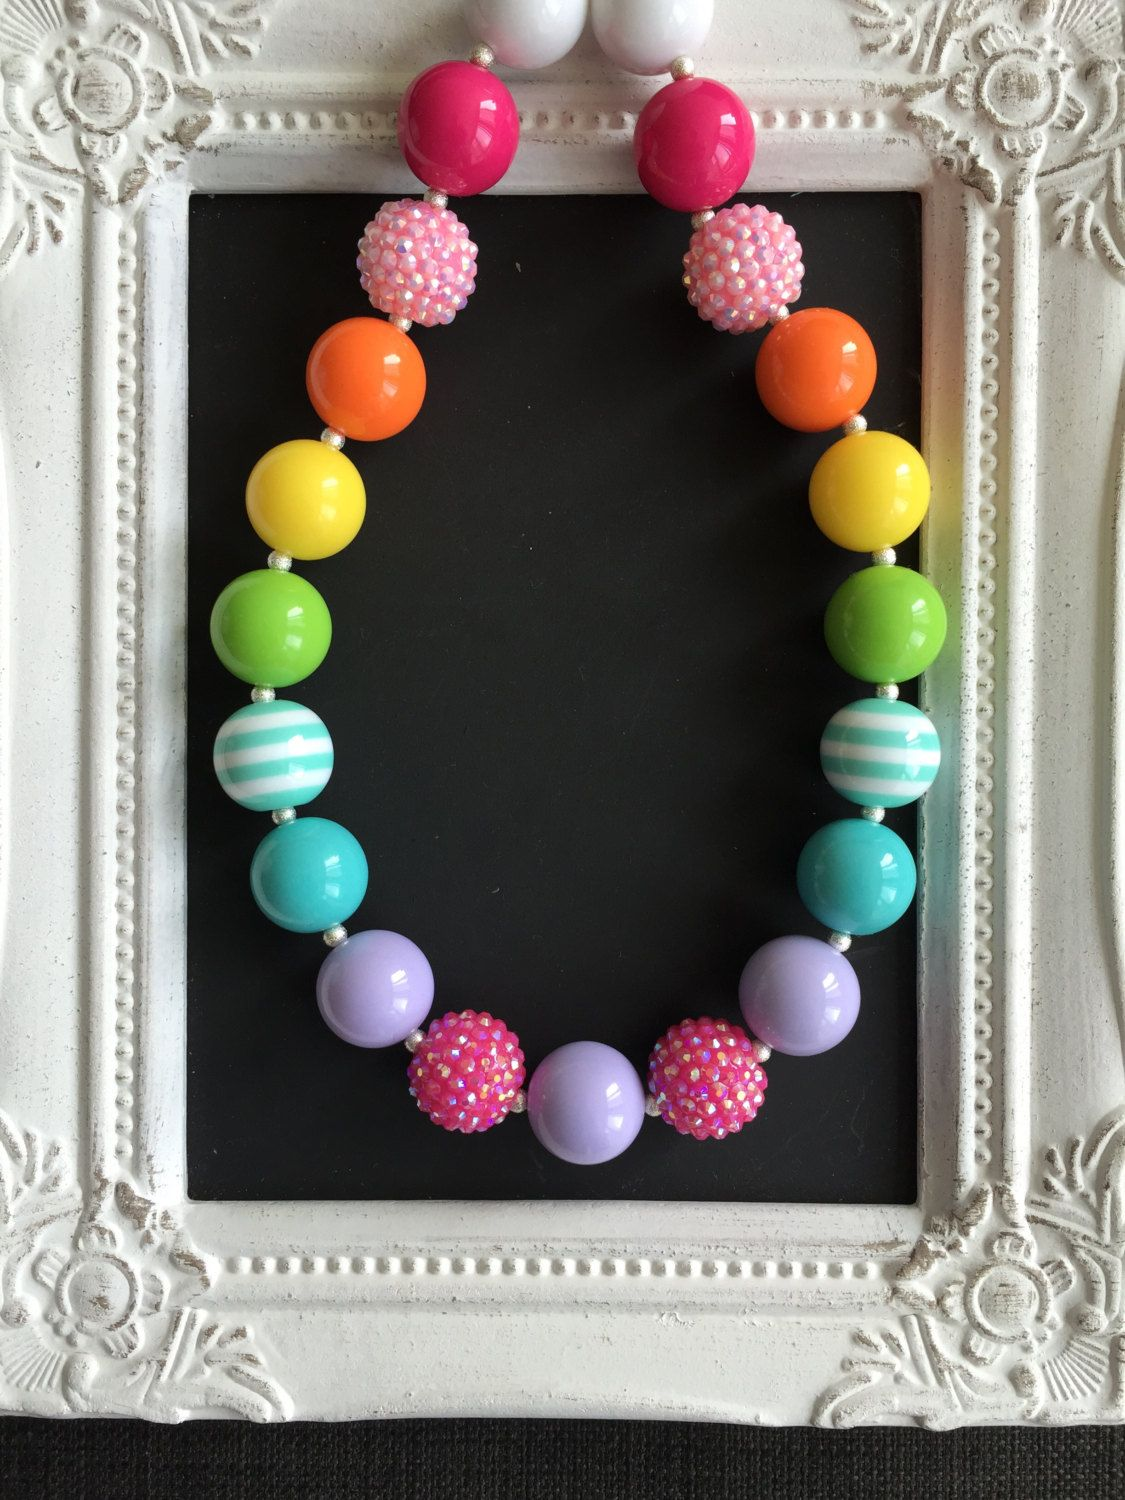 Rainbow bubblegum necklace by LilchicboutiqueLIC on Etsy